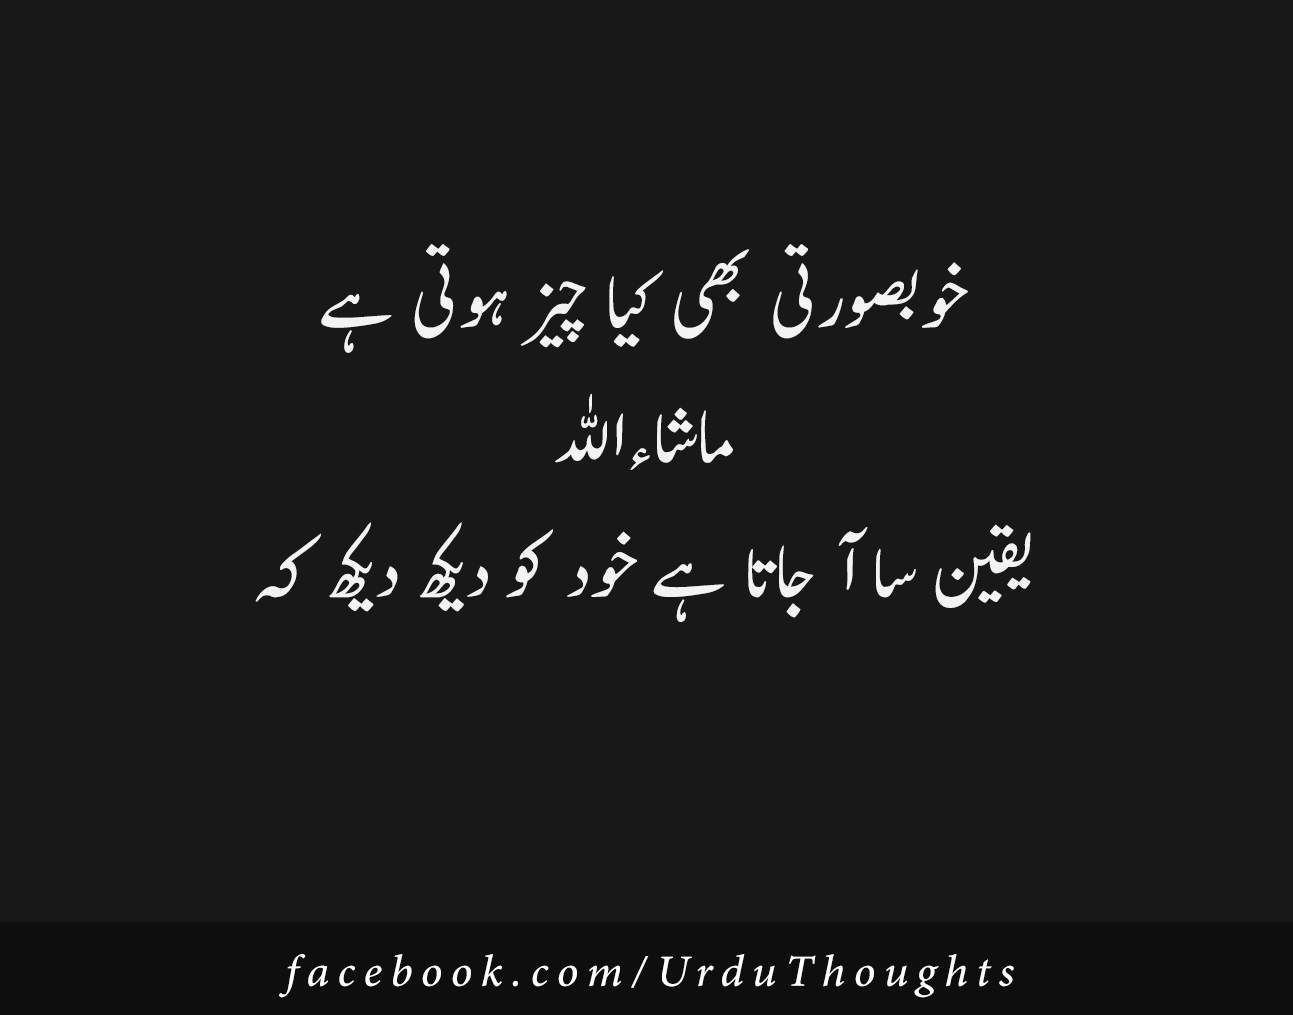 In urdu love poetry funny